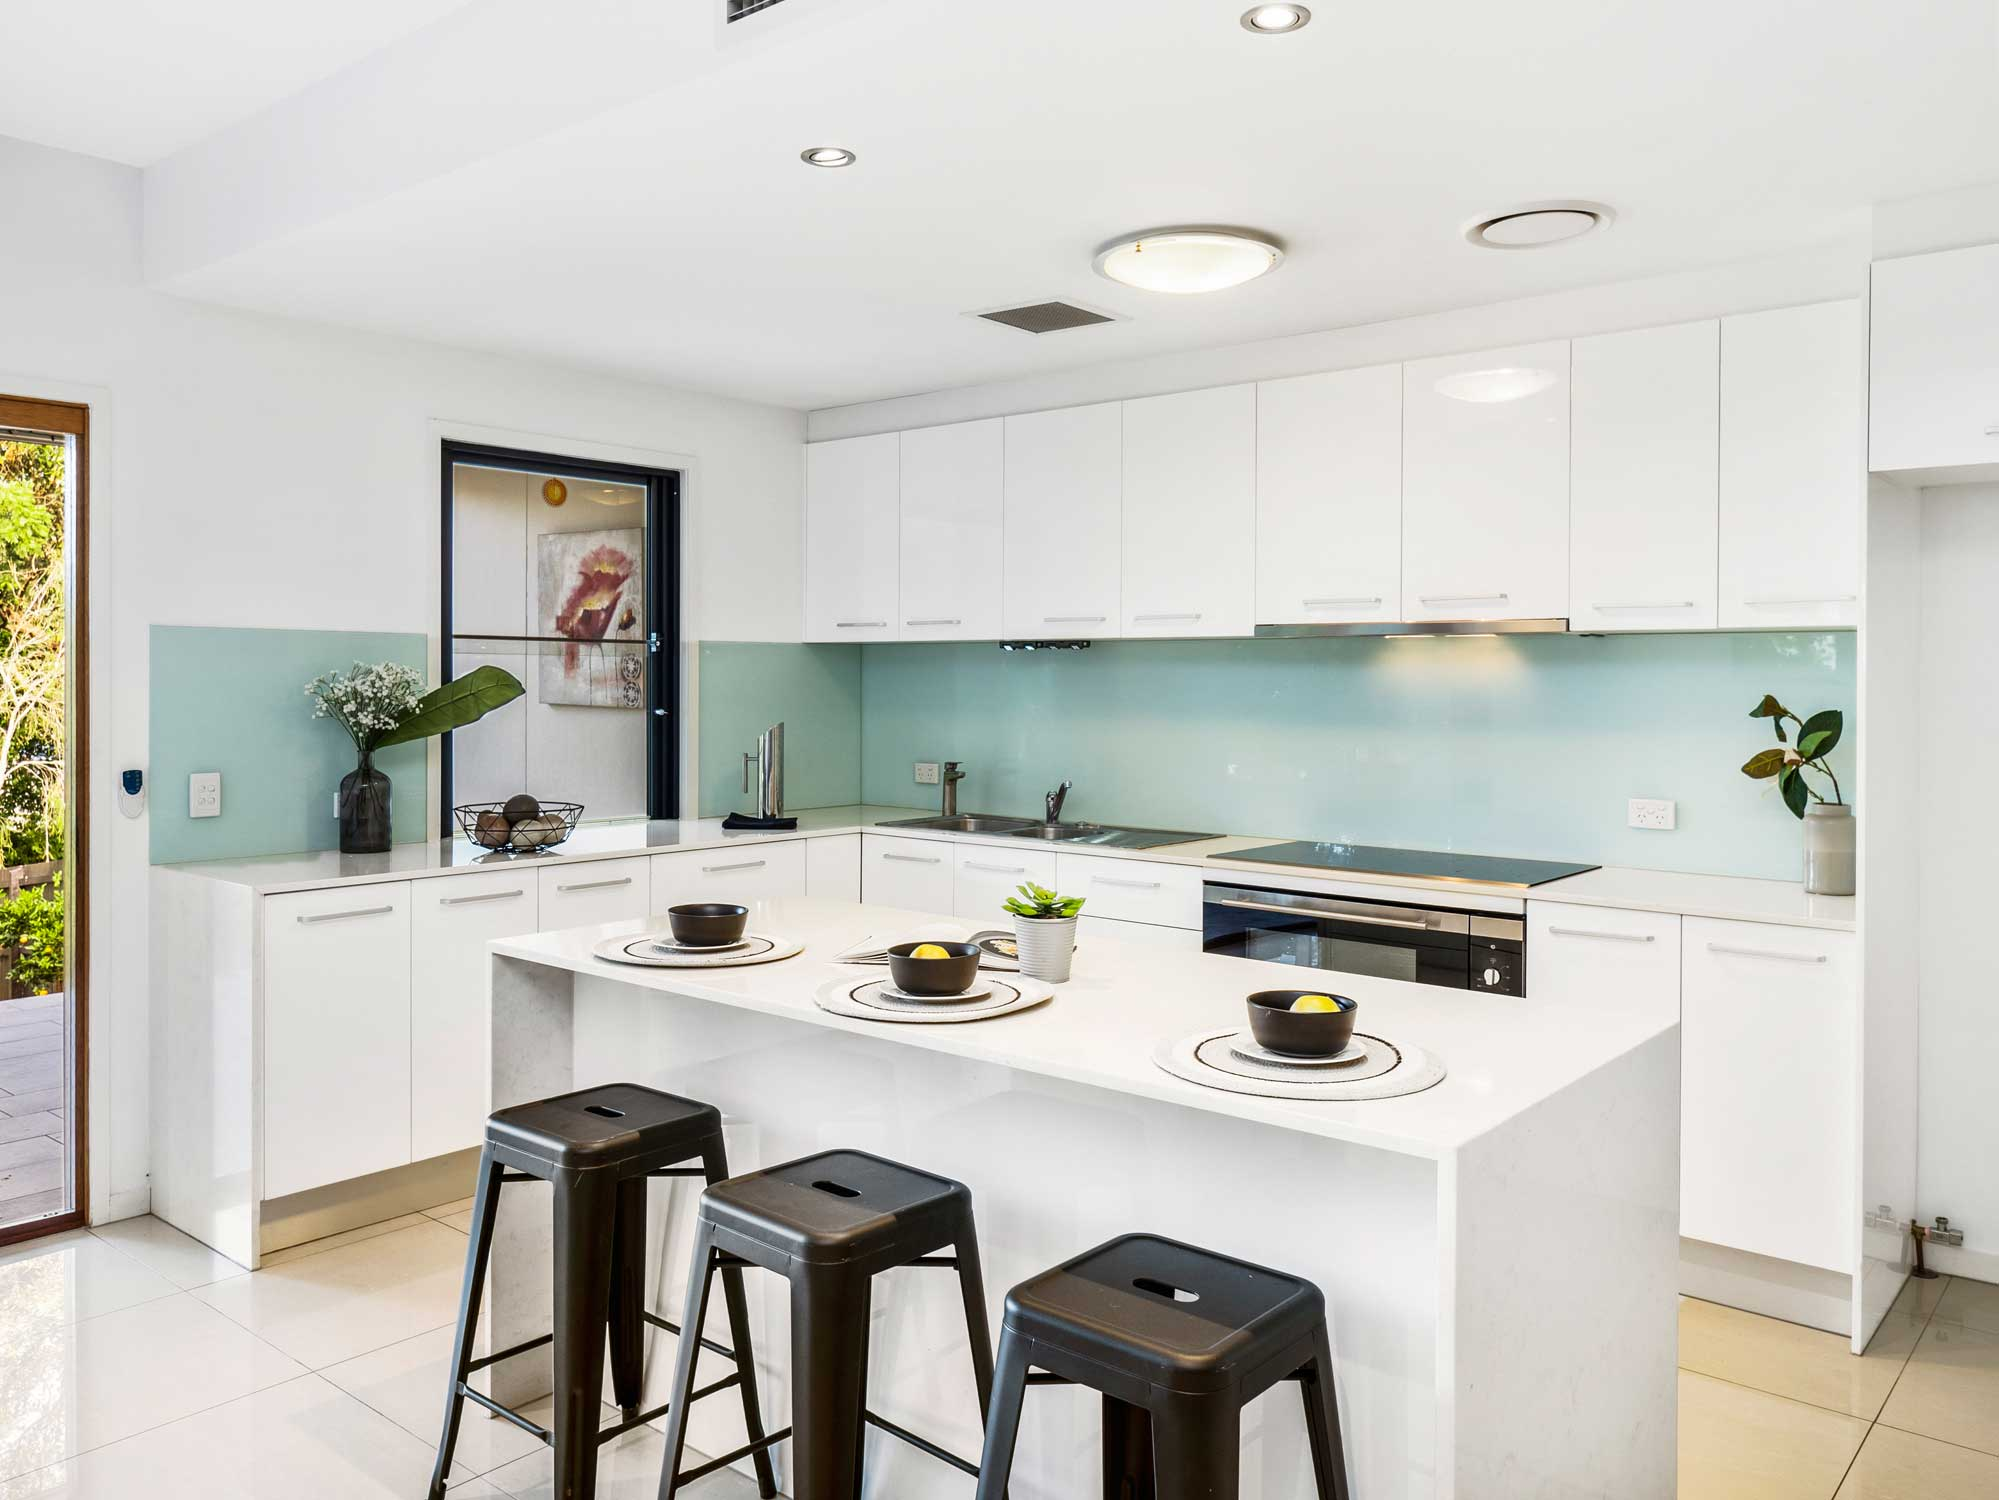 The kitchen - Real estate photography for a new home listing at Wavell Heights, Brisbane north side